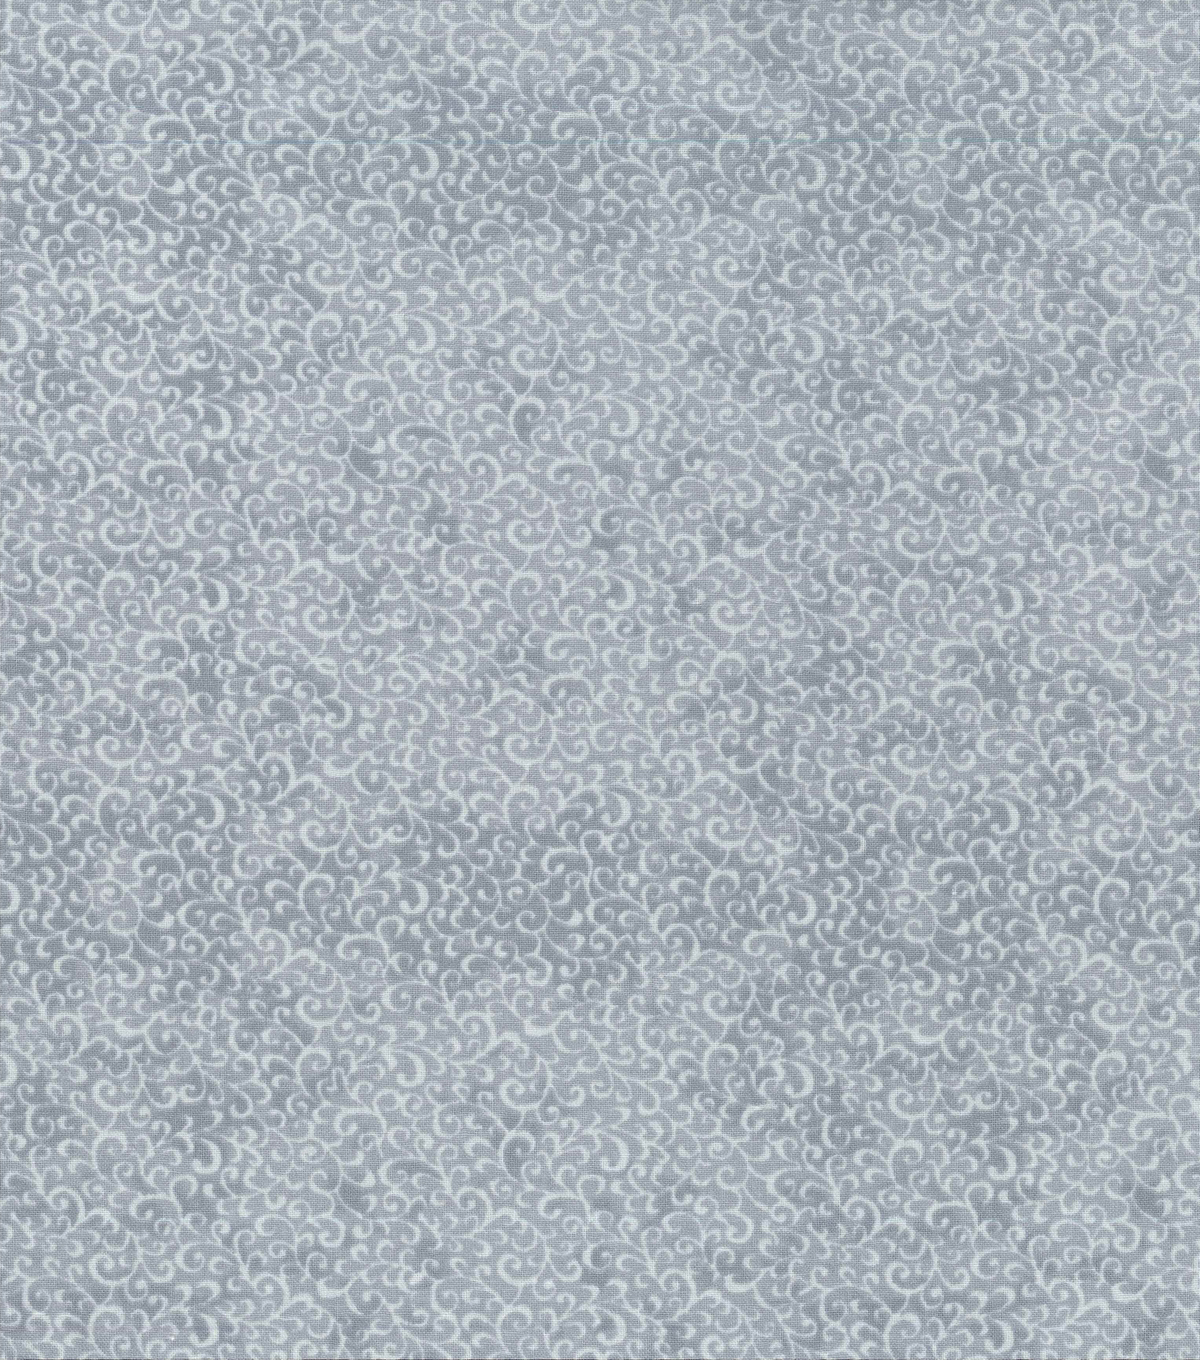 Keepsake Calico Cotton Fabric -Scroll on Light Gray